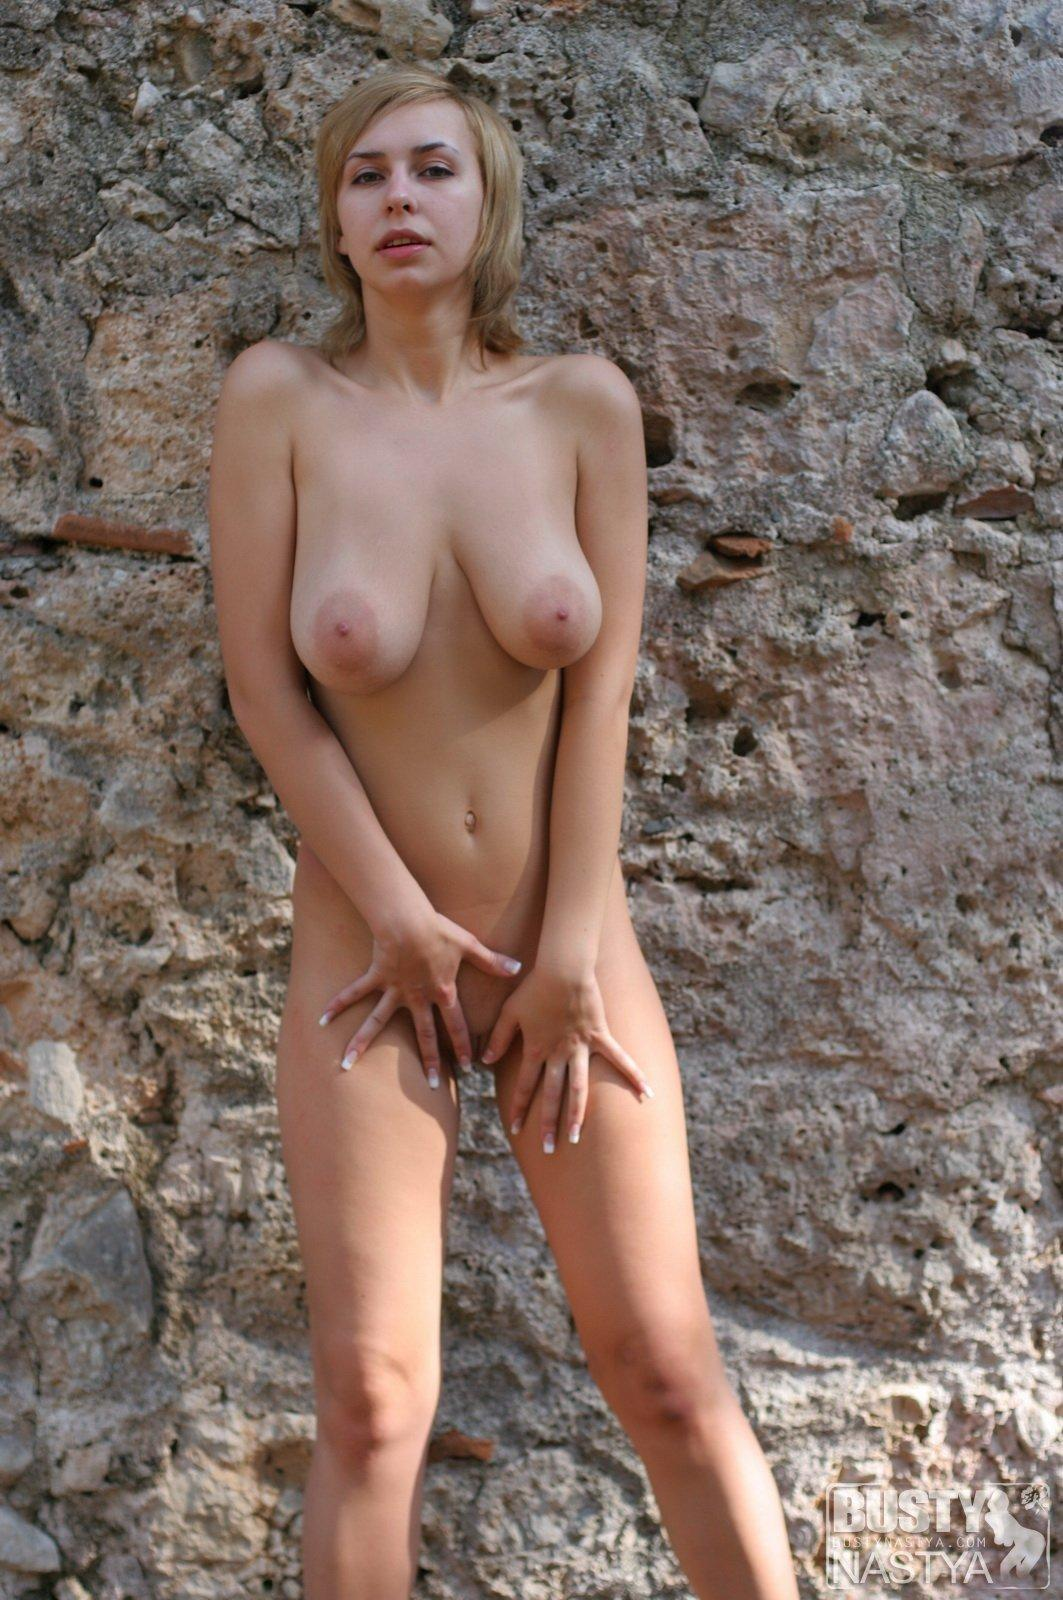 And free big tit naturists pictures final, sorry